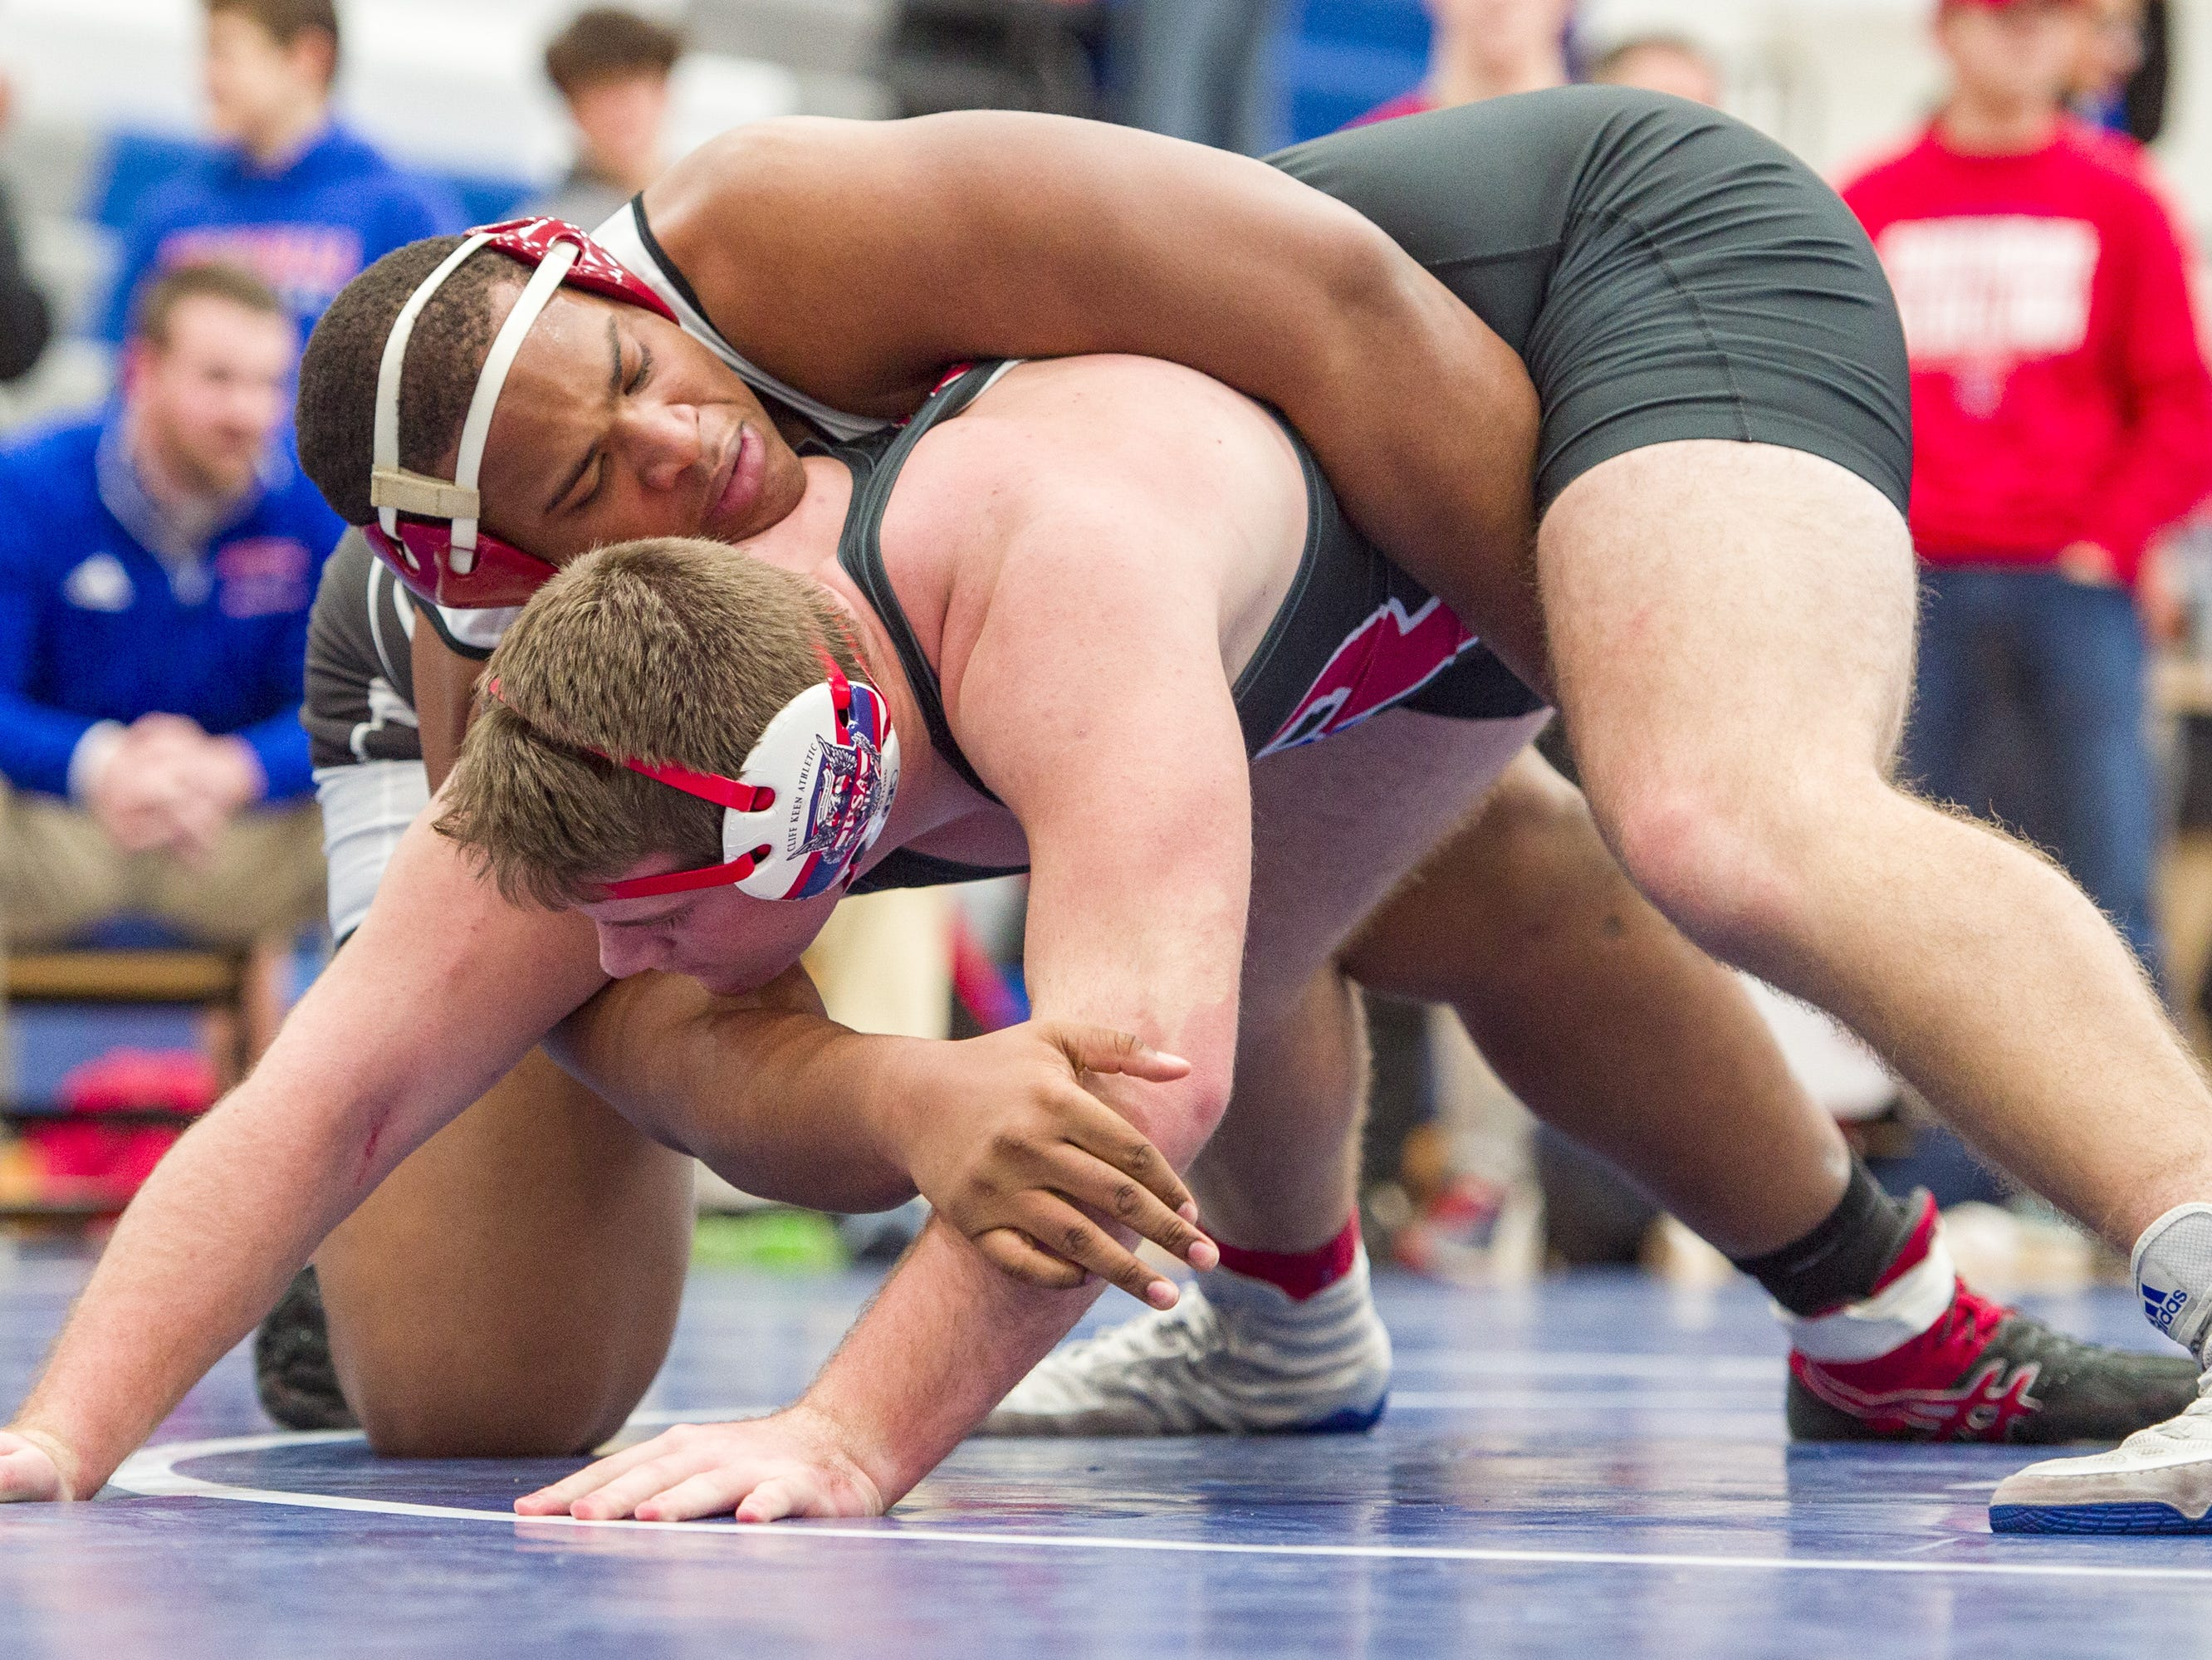 North Central High School wrestler Jamichael Watts, top, wrestles with Roncalli High School's John Harris in the 285-pound weight class. Franklin Central High School hosted the Marion County wrestling championships, Saturday, Dec. 15, 2018.